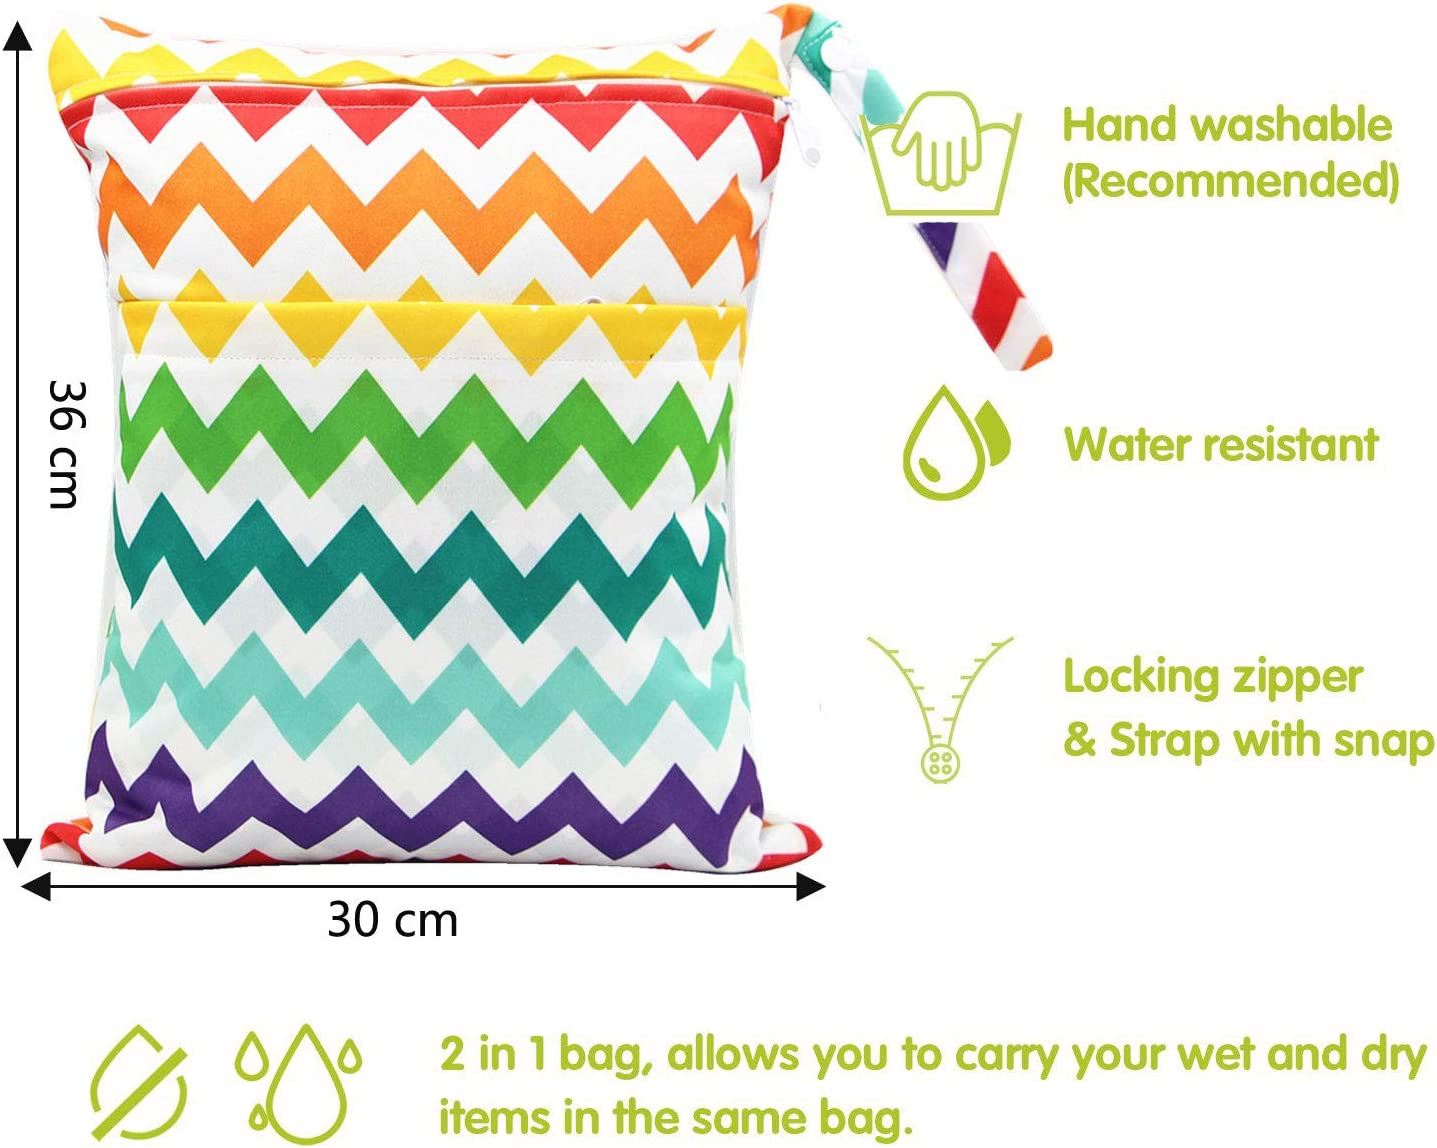 Pool Yoga,Gym Bag for Swimsuits /& Wet Clothes With 2 Zippered Pockets ALINK 2 Pack Wet Dry Bags for Baby Cloth Diapers Elephant Washable Travel Bags Beach